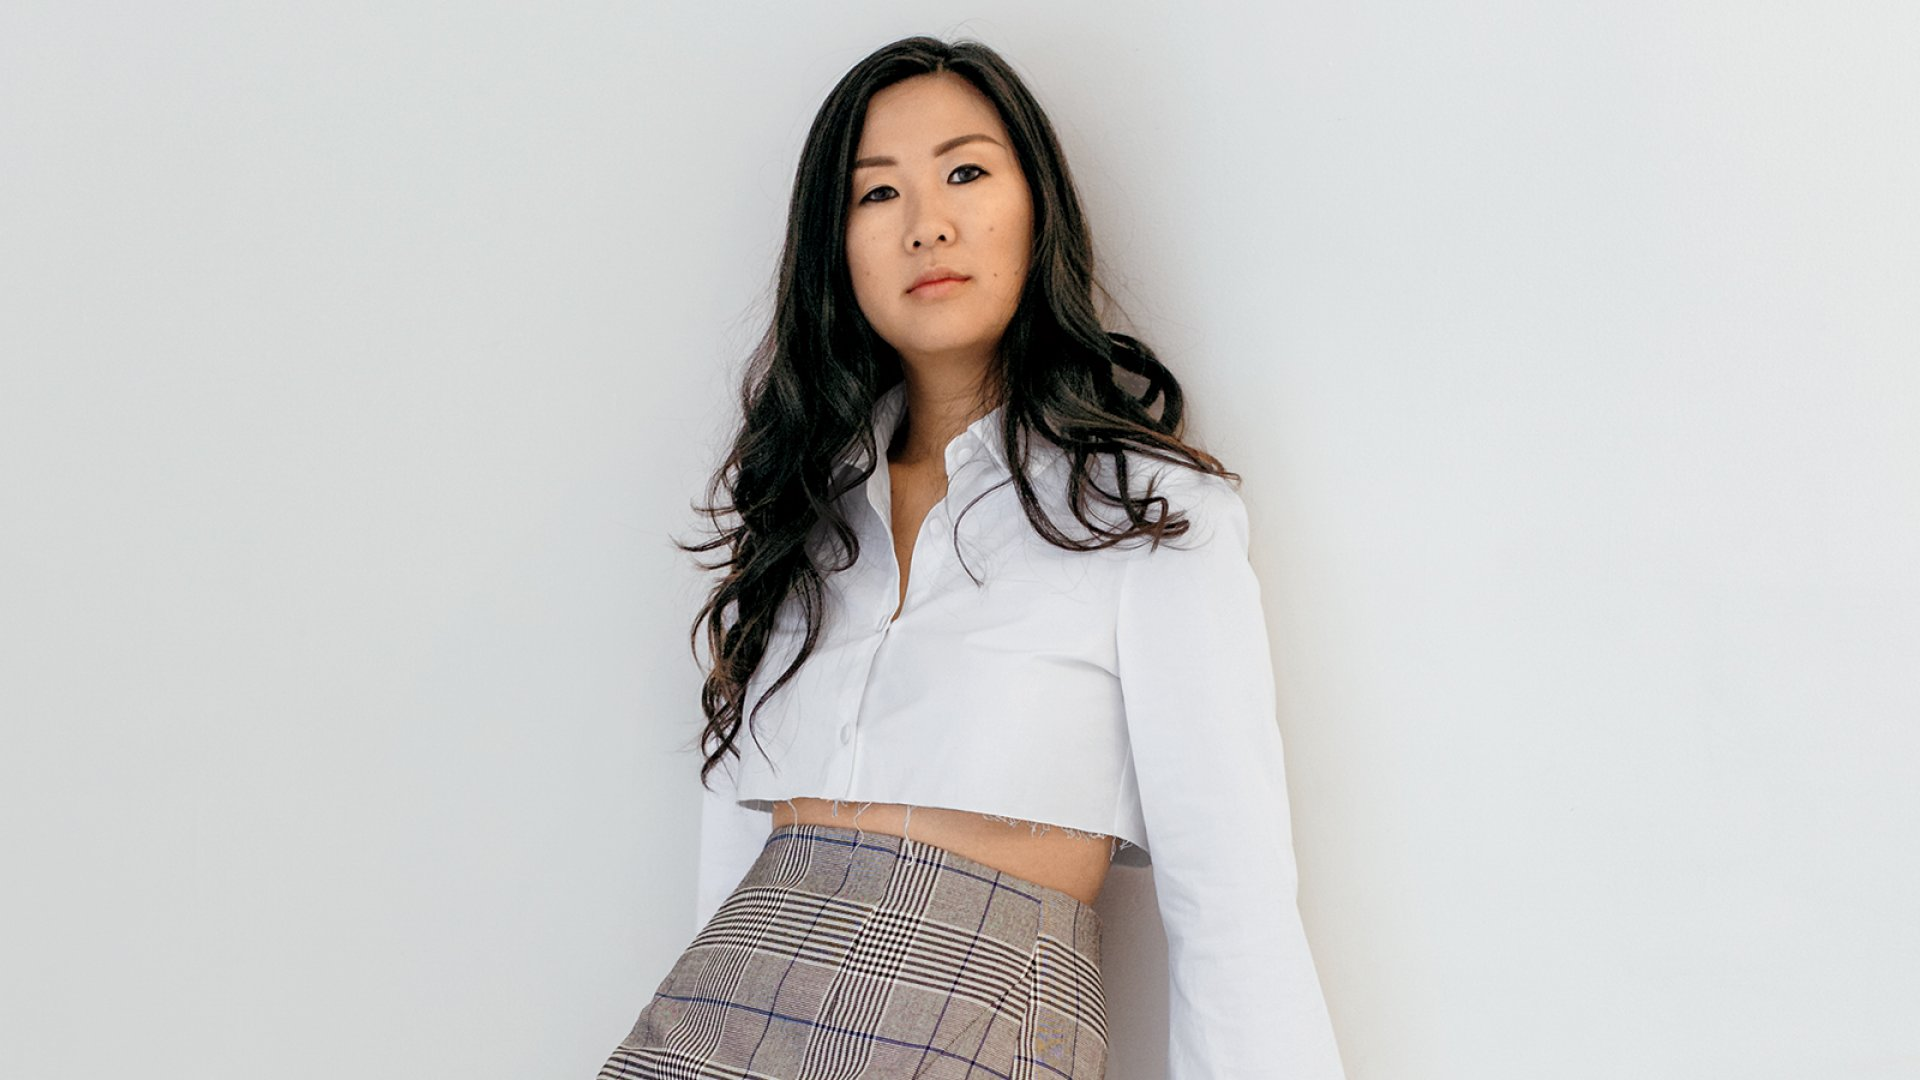 Jessie Zeng was able to connect consumer likes on social media with a network of factories in China to produce custom apparel on demand.